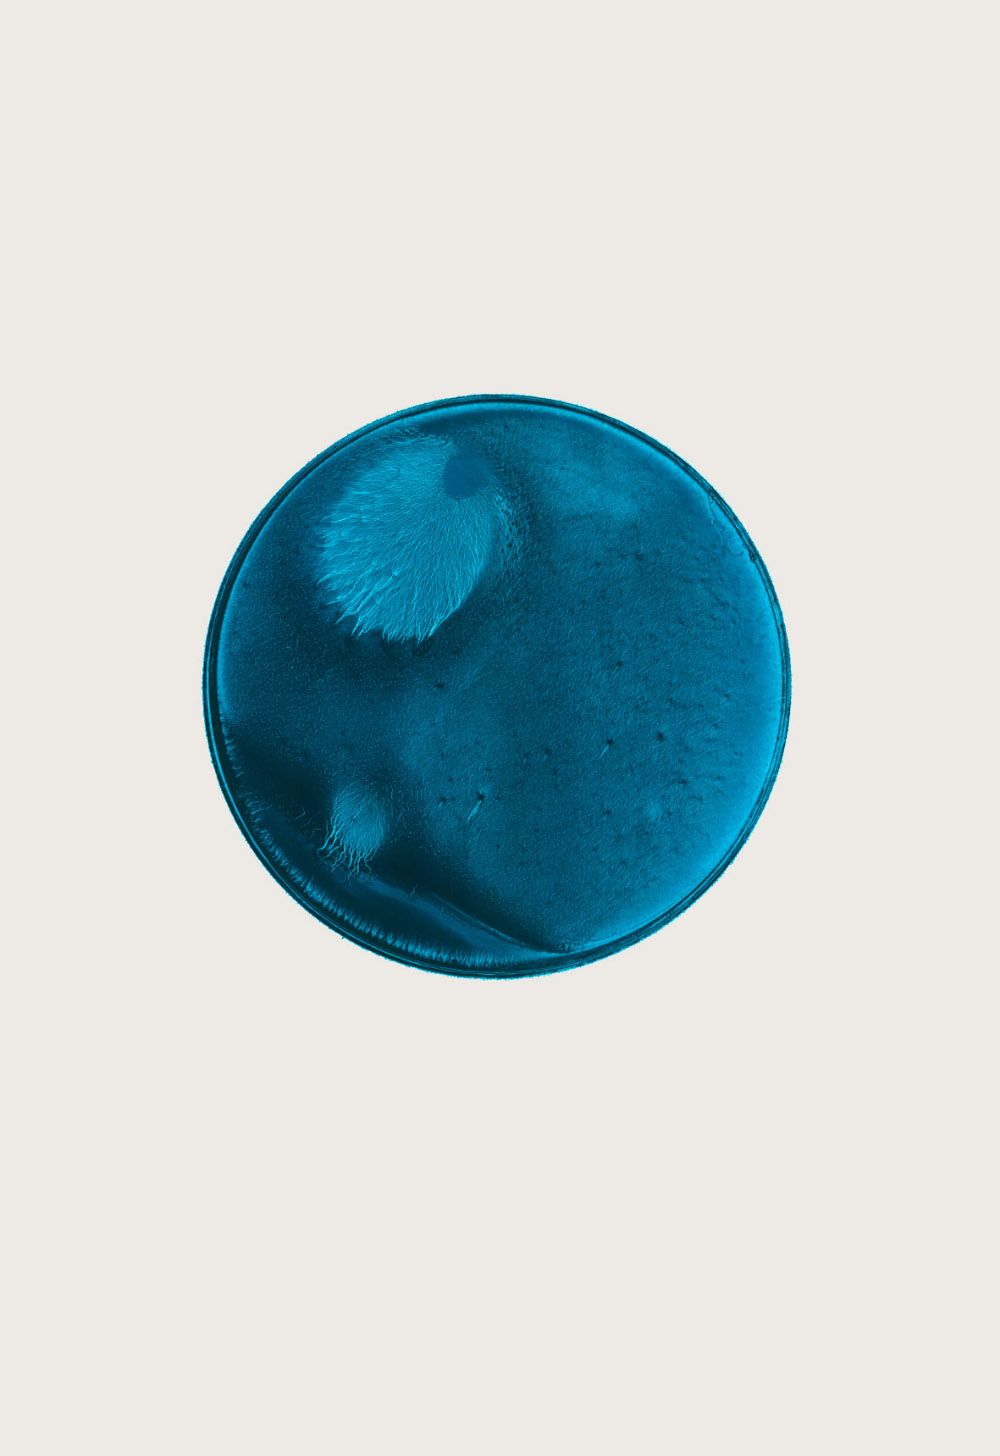 THIS IS NOW – turquoise (III), 2010, pigment dispersal on 100% cotton fibre, framed and glazed, 108.5 x 72.5 cm 36.6 cm